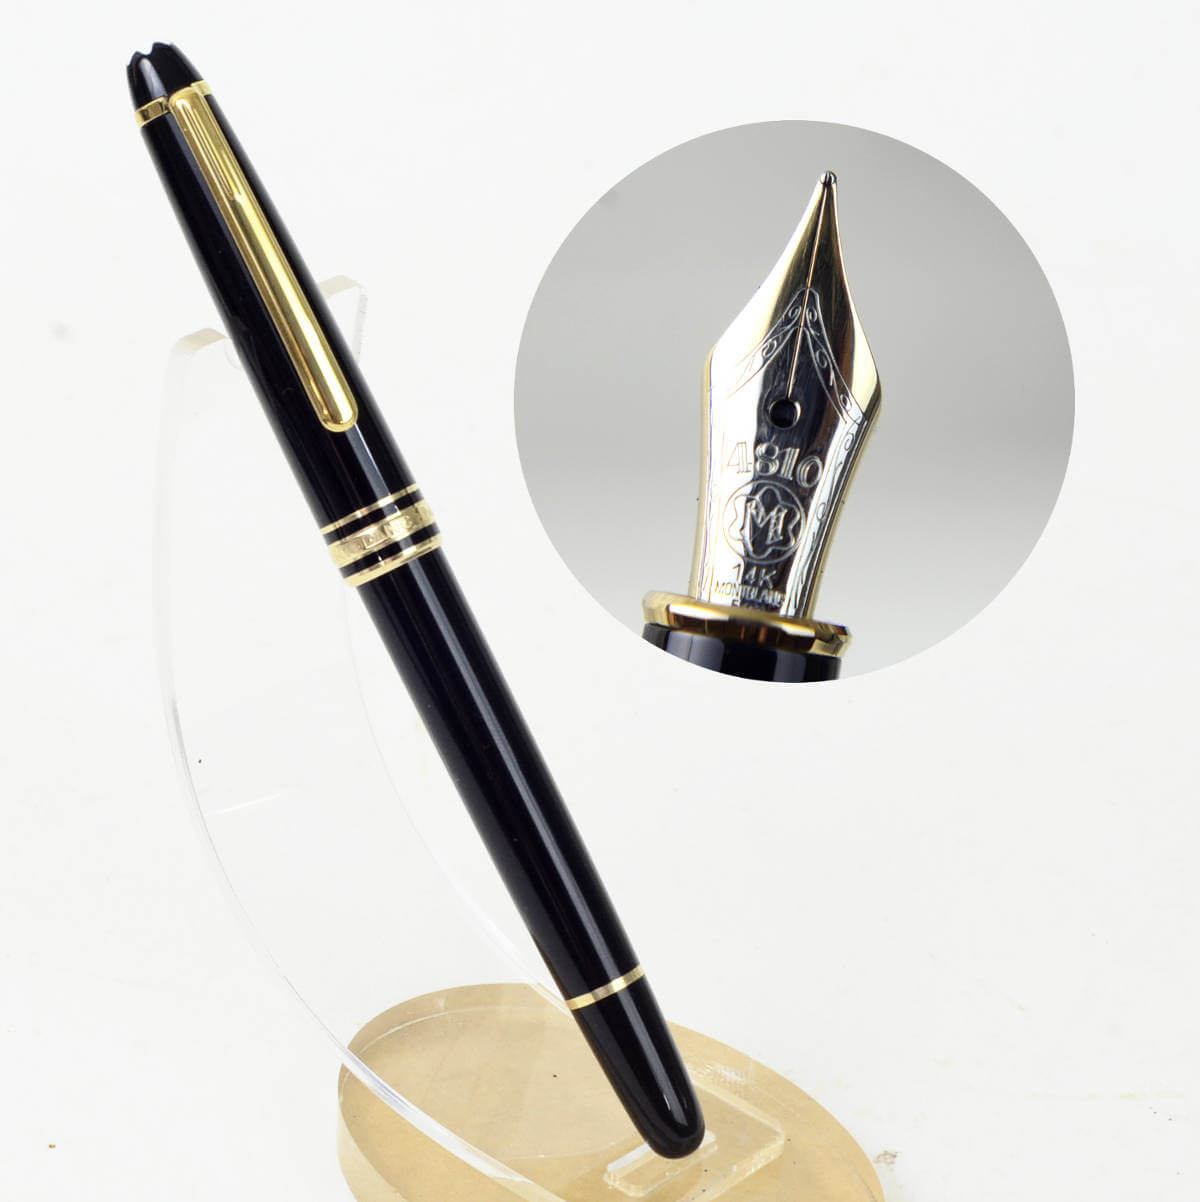 Buy Montblanc Meisterstuck 144 Fountain Pen 14k Dultone Gold Nib Online